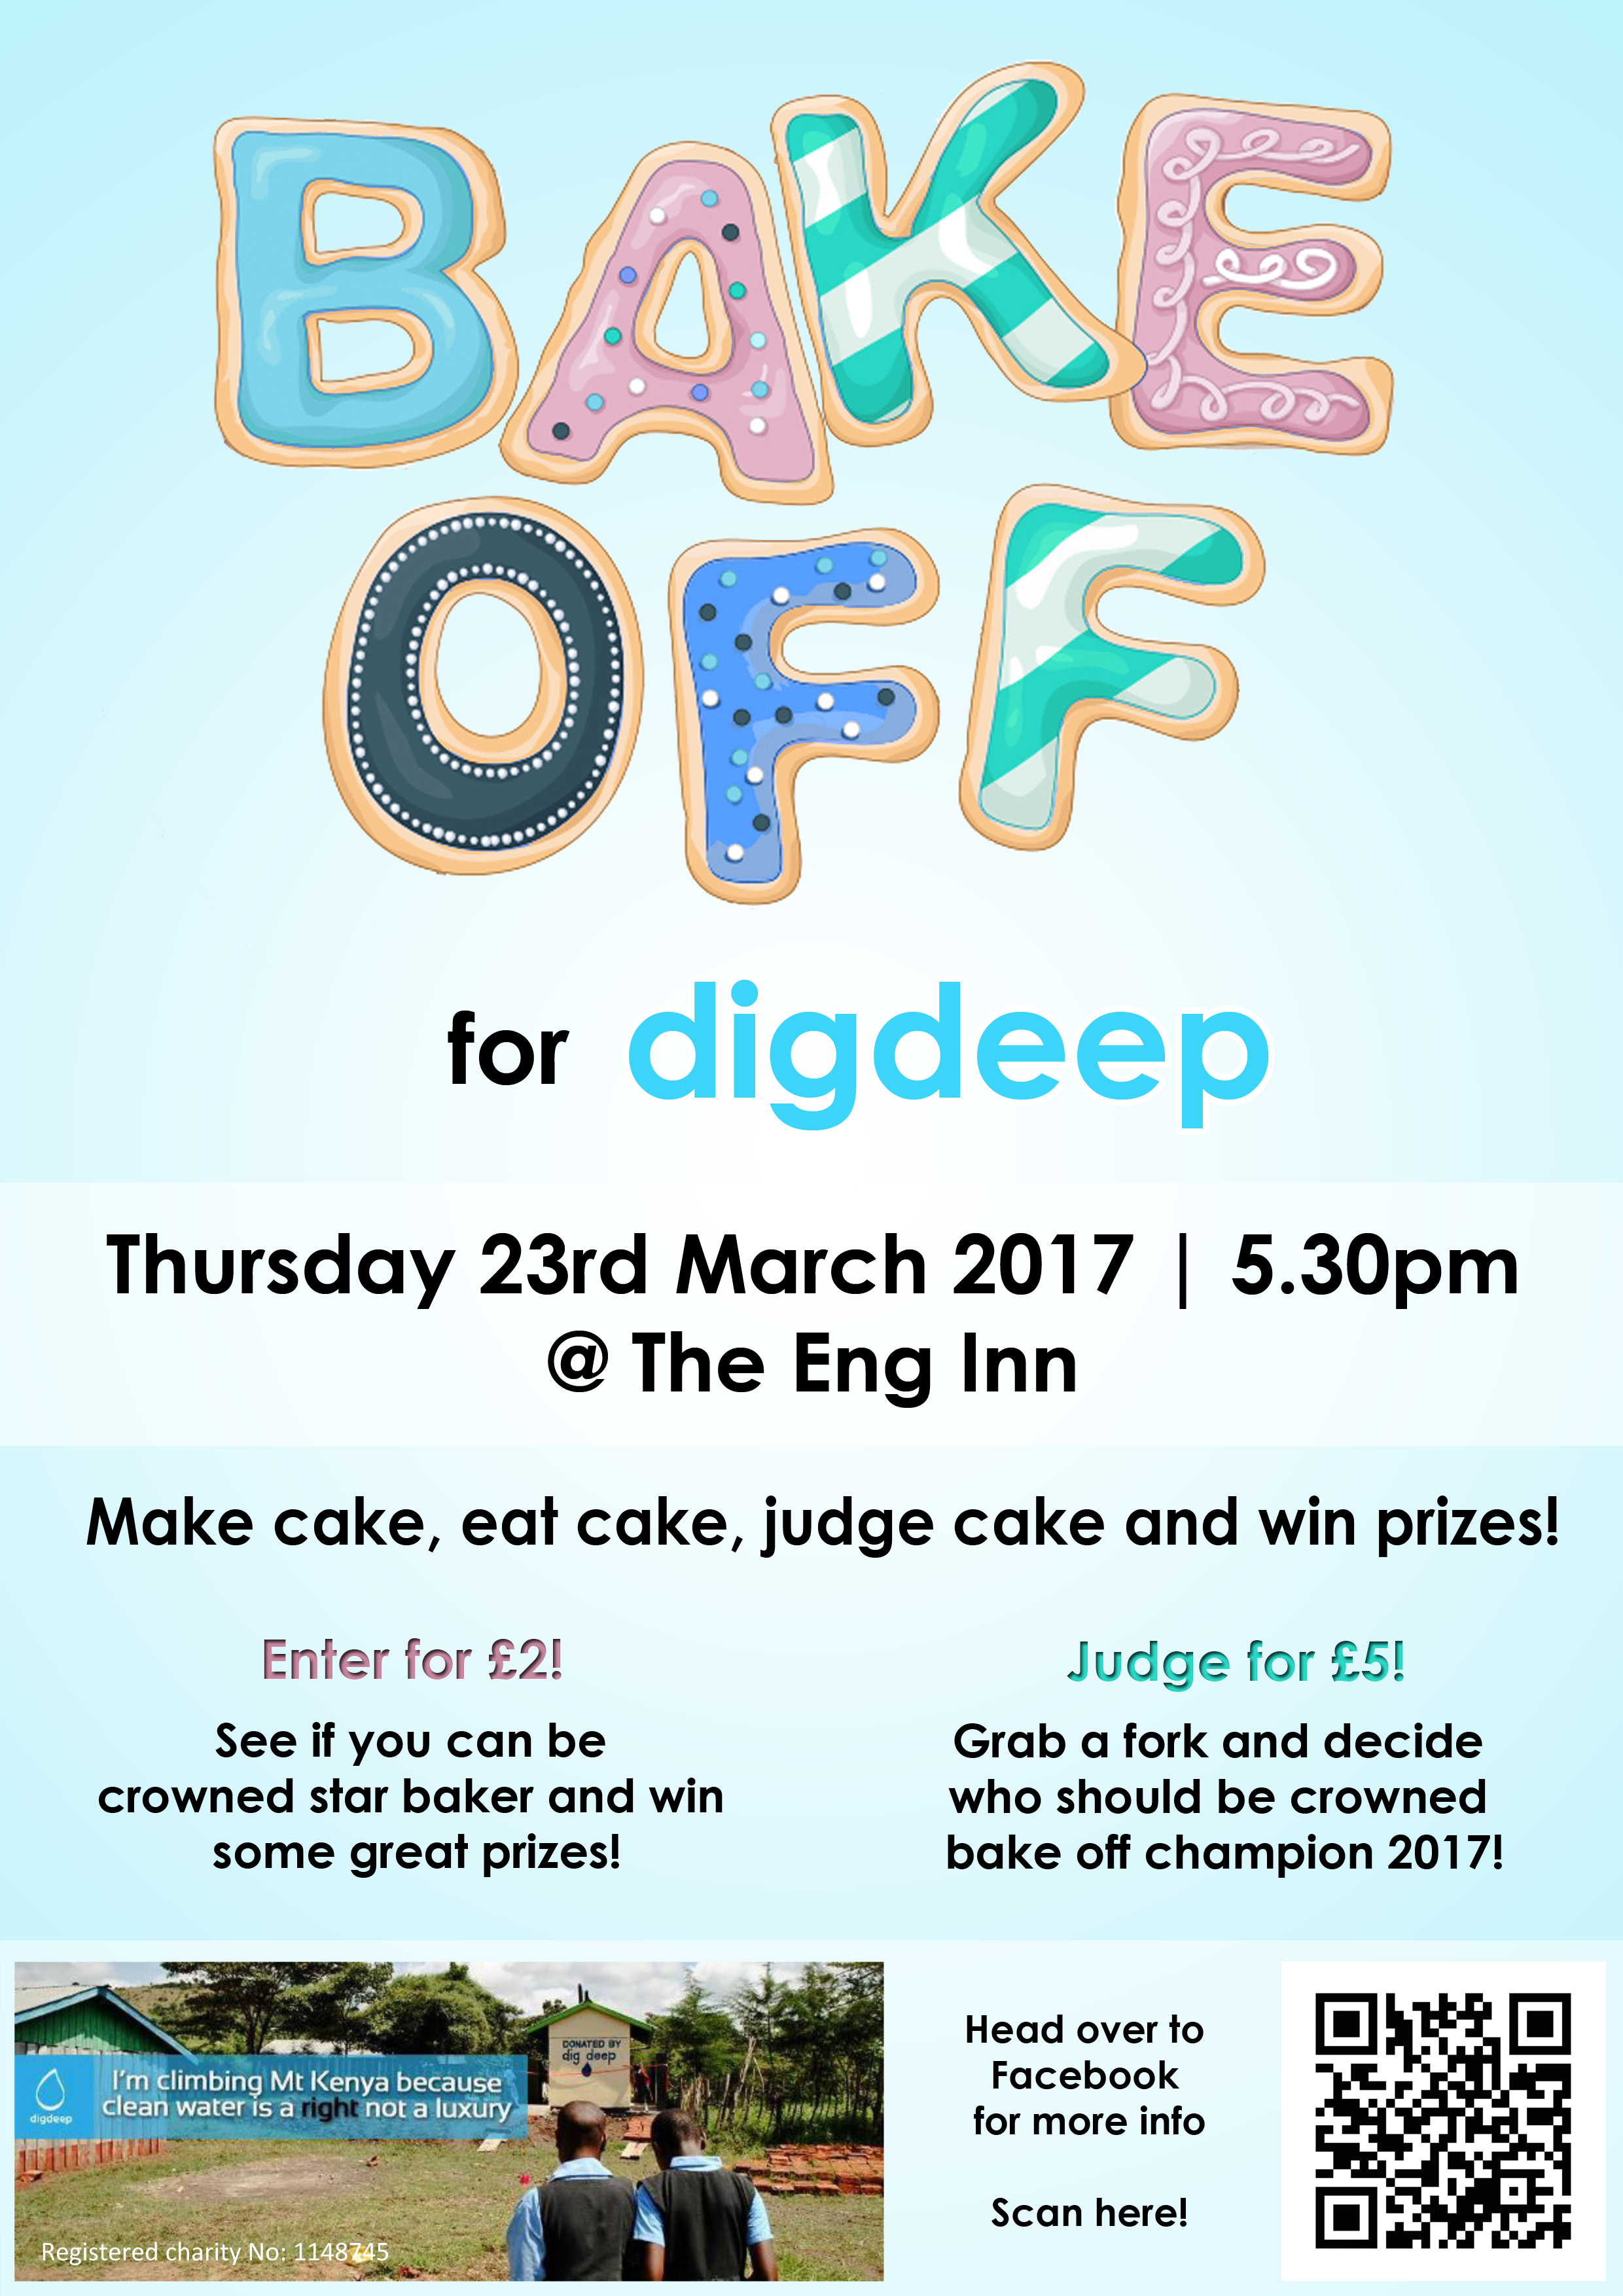 the bake off for dig deep school of engineering engineering bake off for dig deep